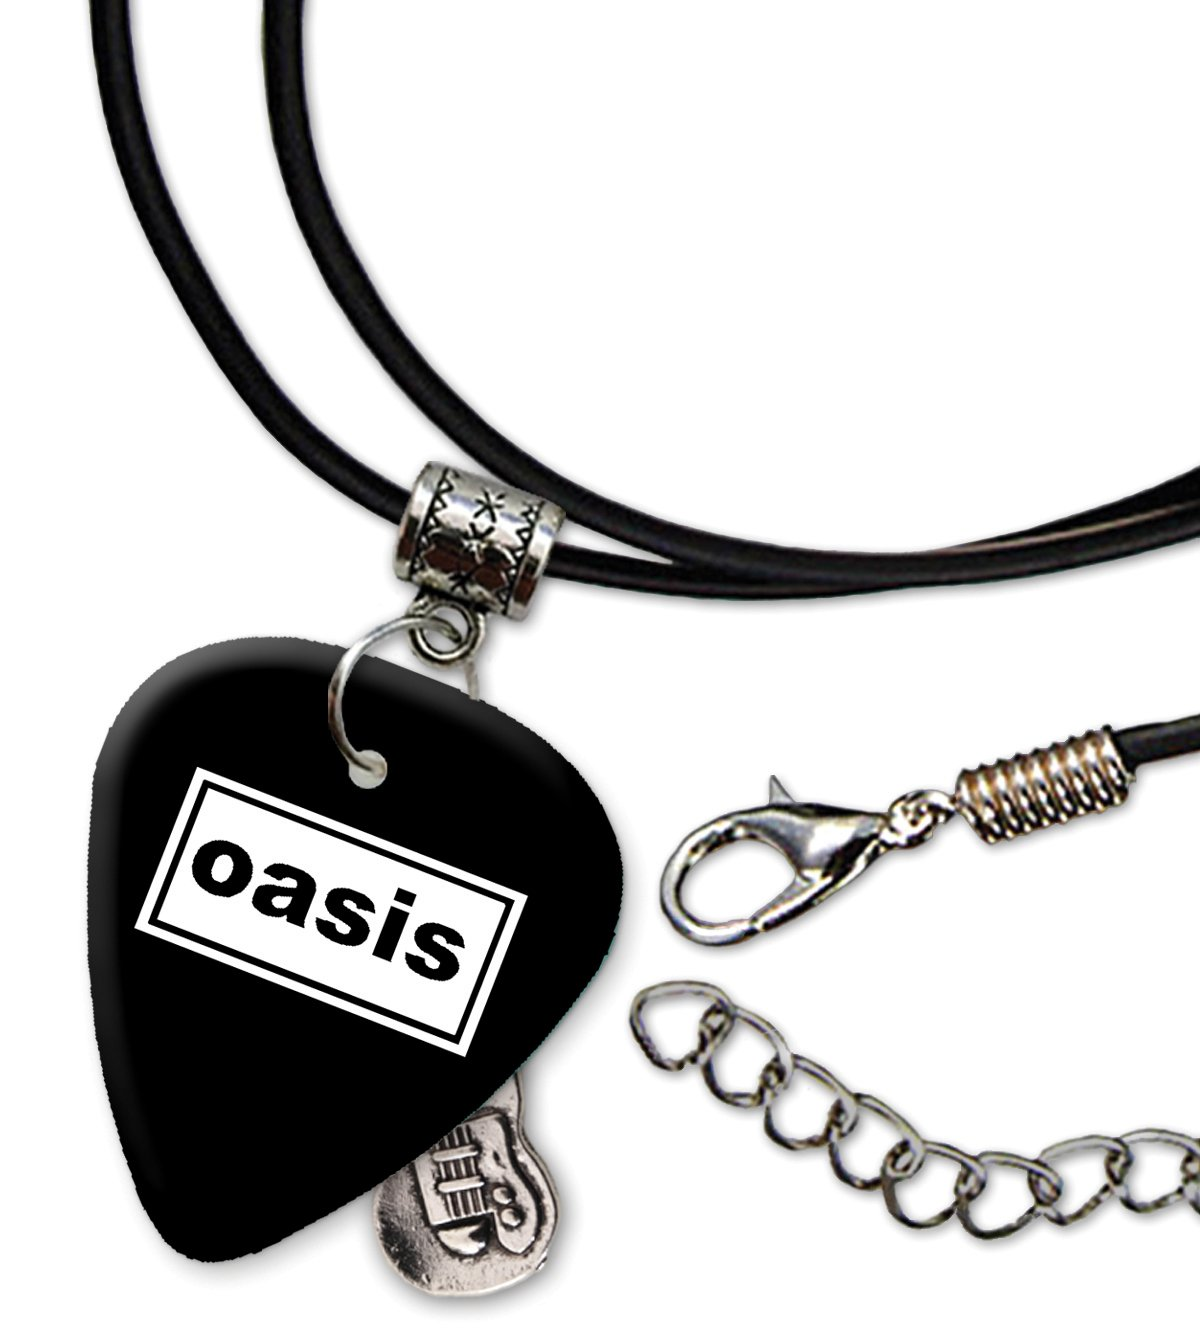 Oasis Band Logo Collana di corda di chitarra plettro (H) We Love Guitars